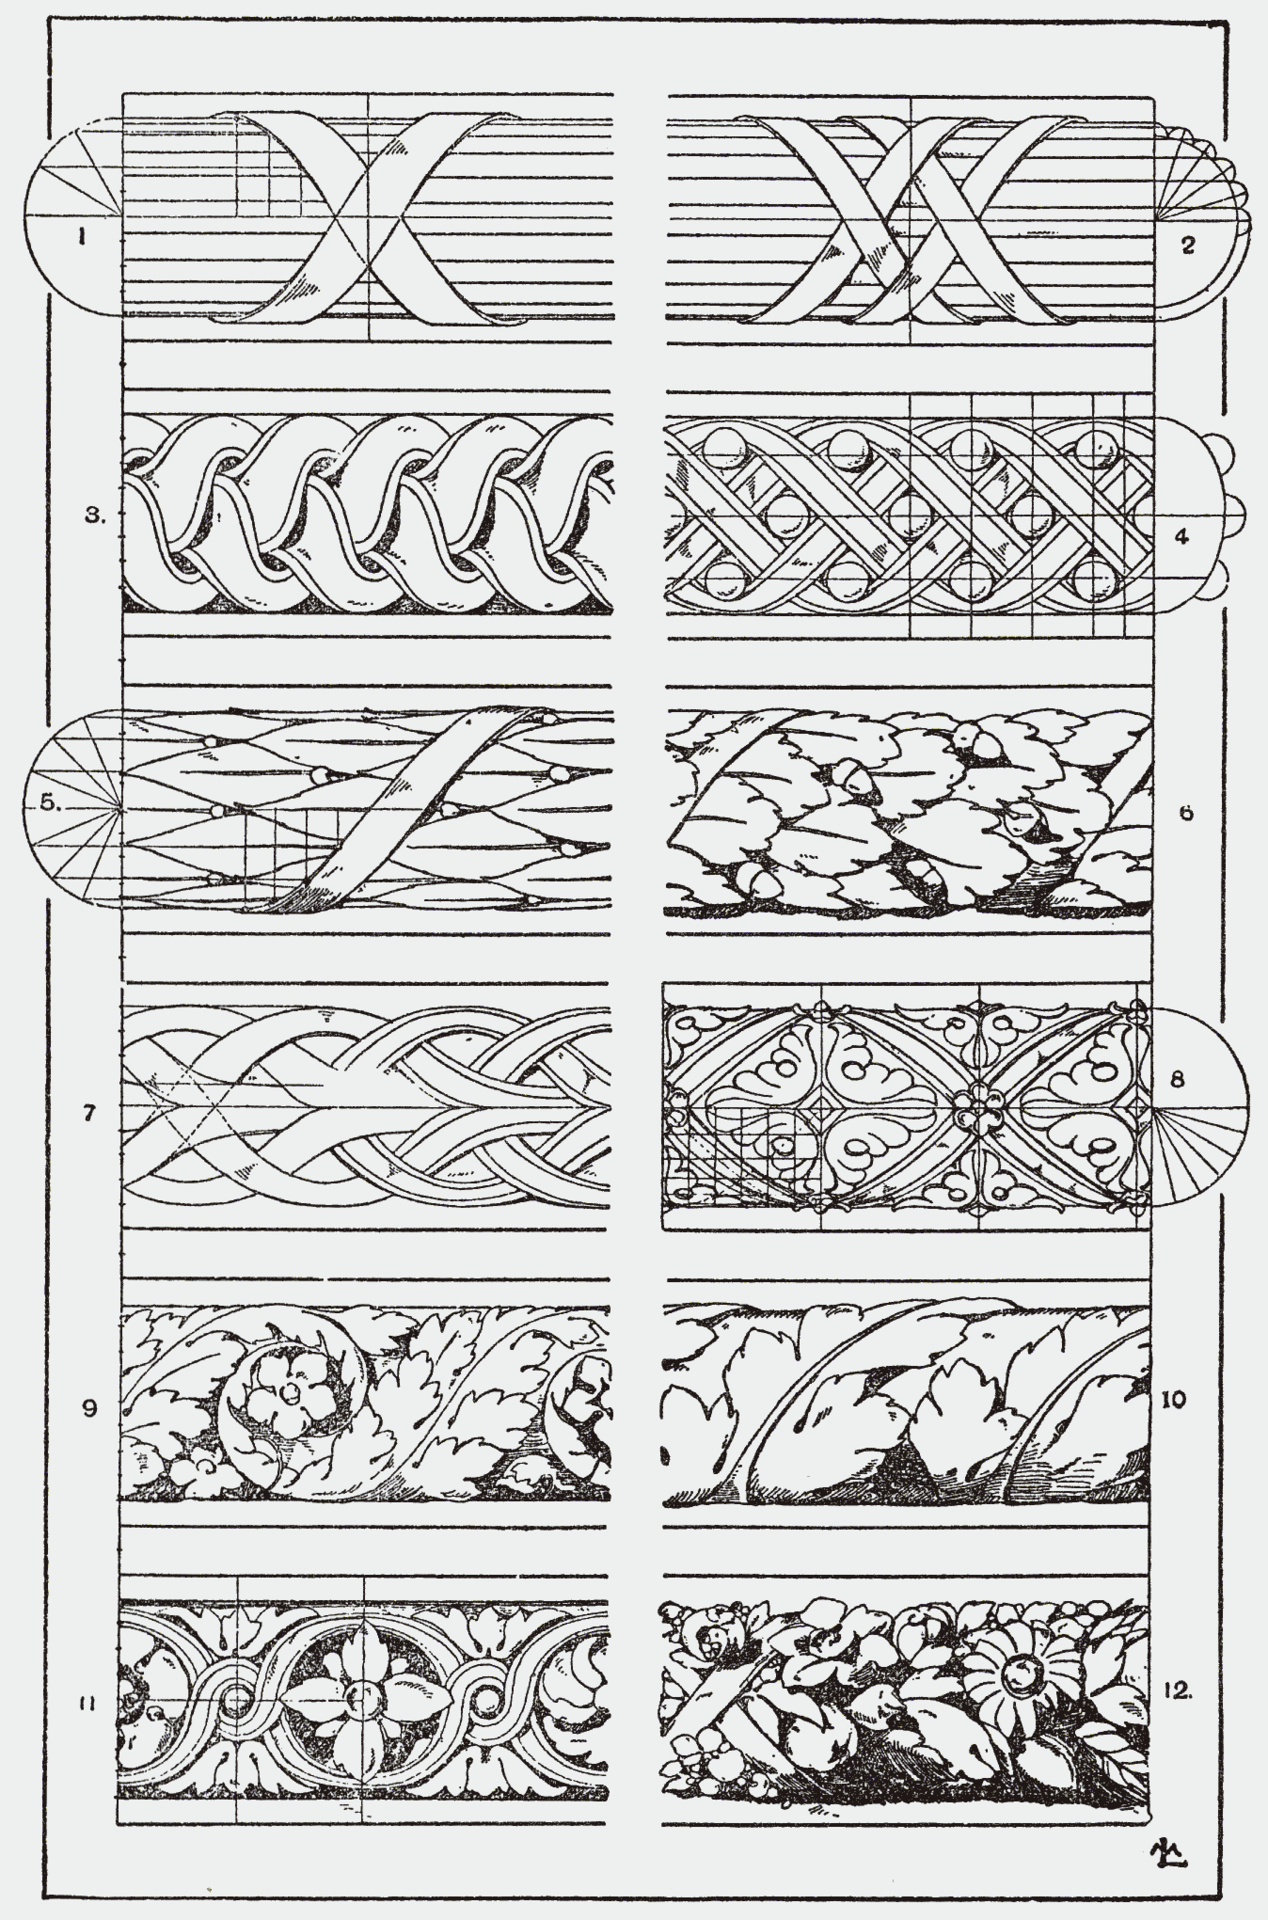 Category Meyer S Ornament Ornament Drawing Zentangle Patterns Ornaments Design